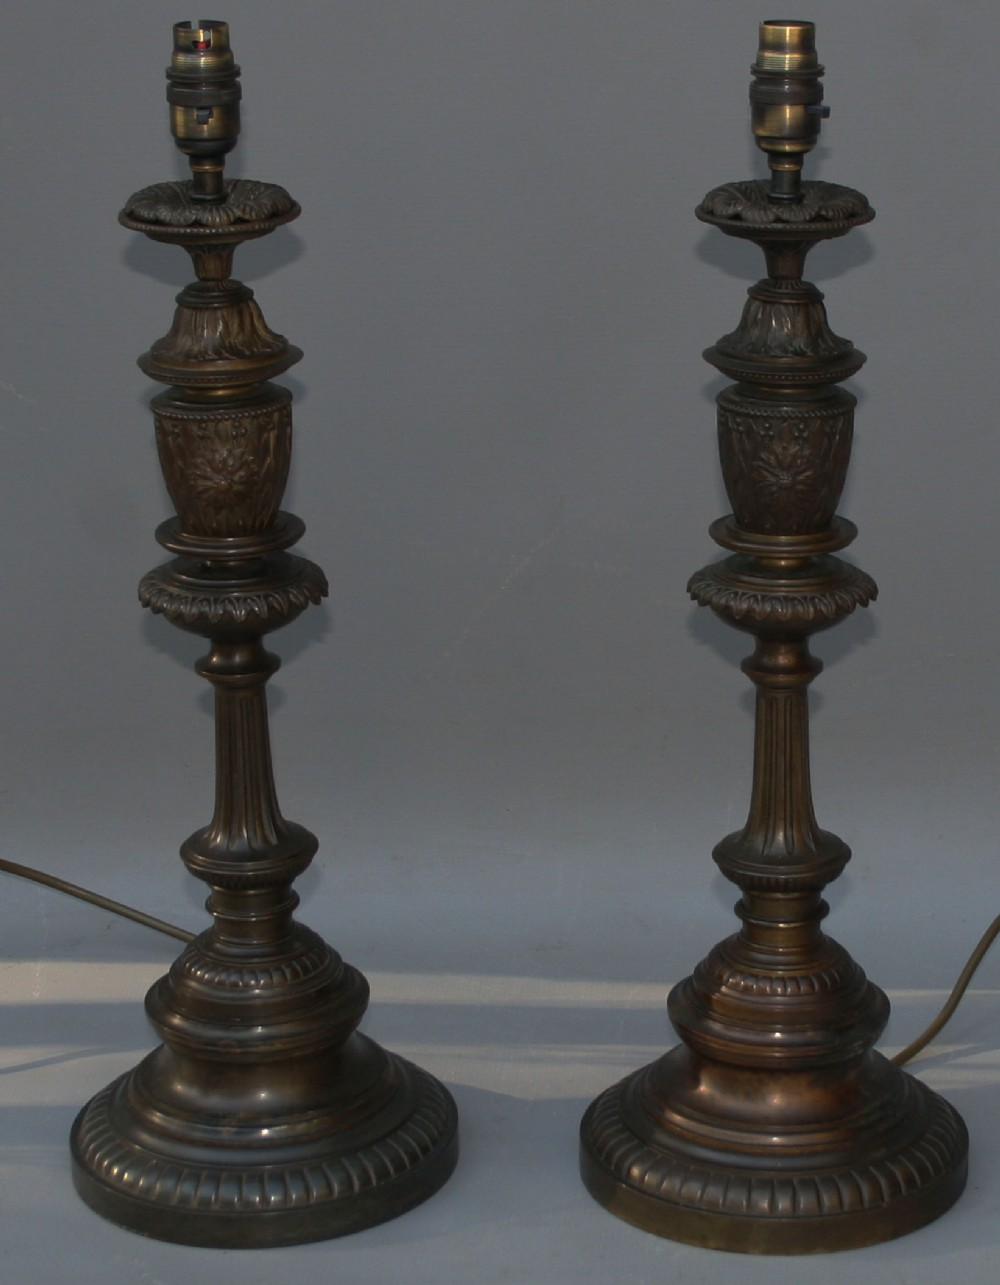 a pair of victorian bronze mannerist candlestick table lamps